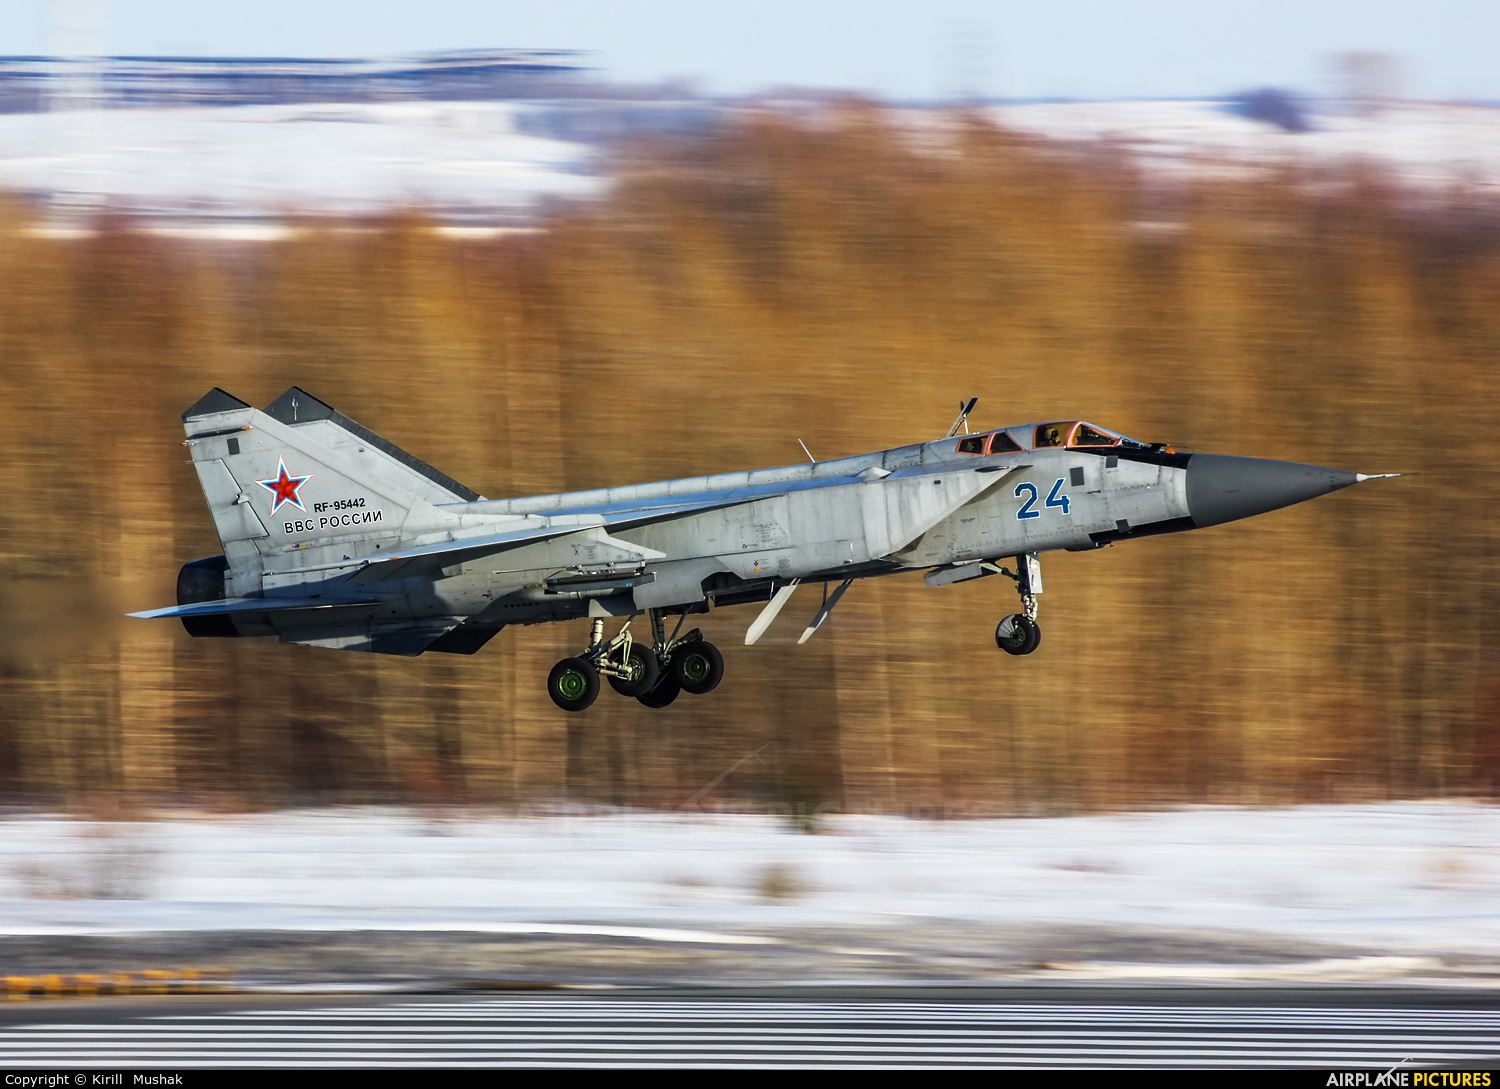 Russia - Air Force RF-95442 aircraft at Undisclosed Location